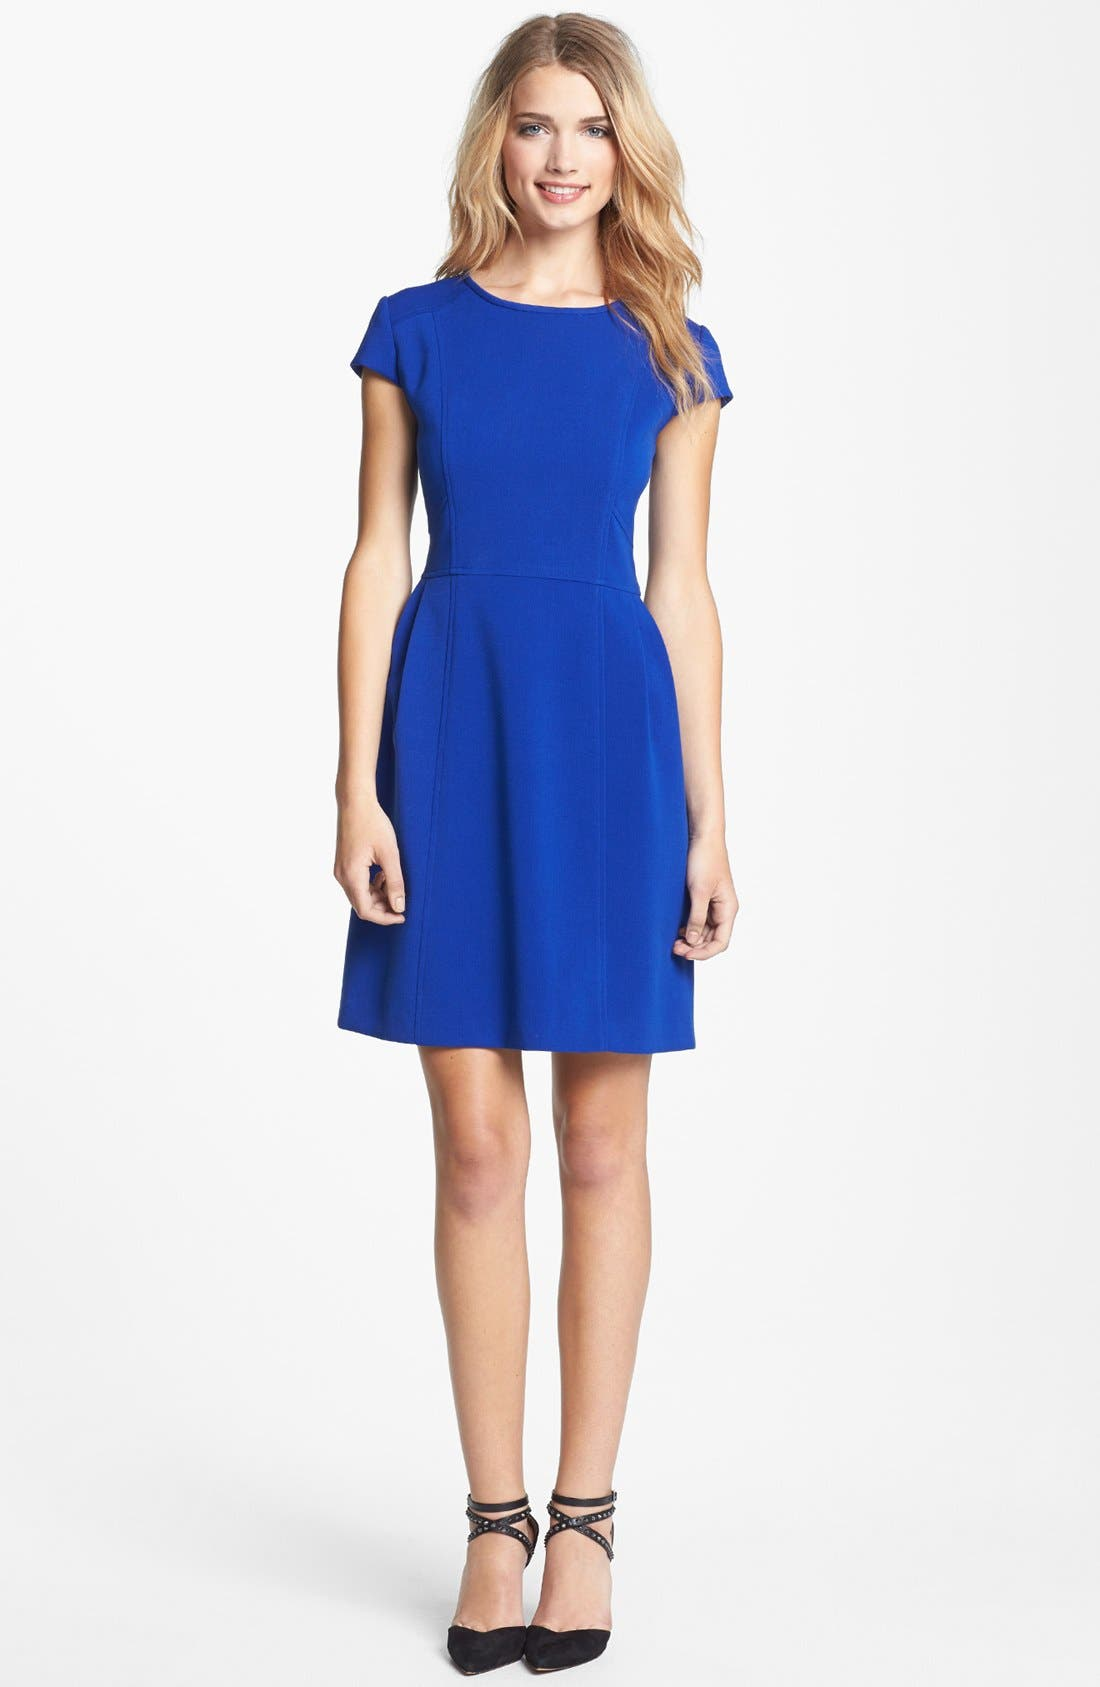 Alternate Image 1 Selected - Eliza J Seamed Double Knit Crepe Fit & Flare Dress (Regular & Petite)